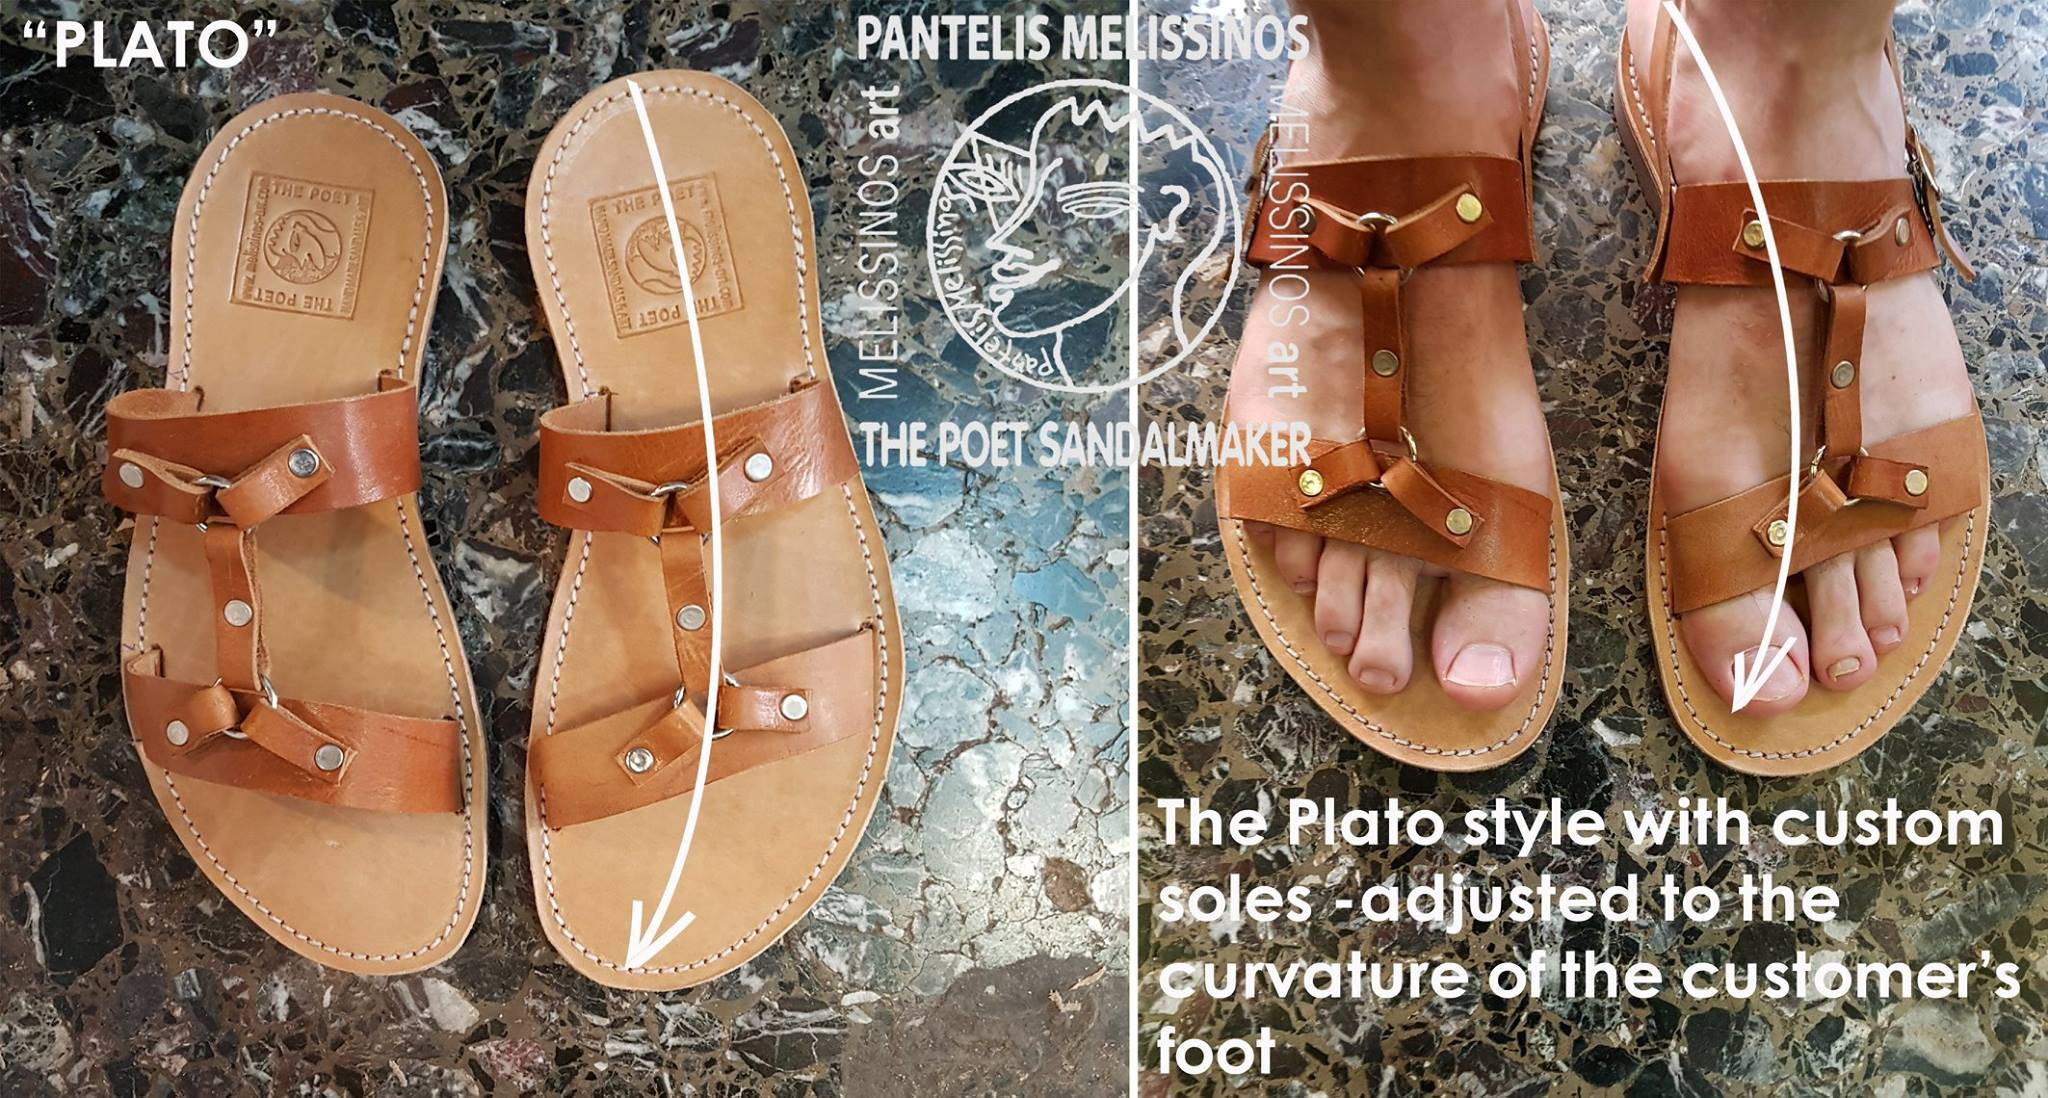 d8947b8bb8452 All sandals are custom-fit to your measurements. We also bevel the edges of the  leather straps to make them more ...